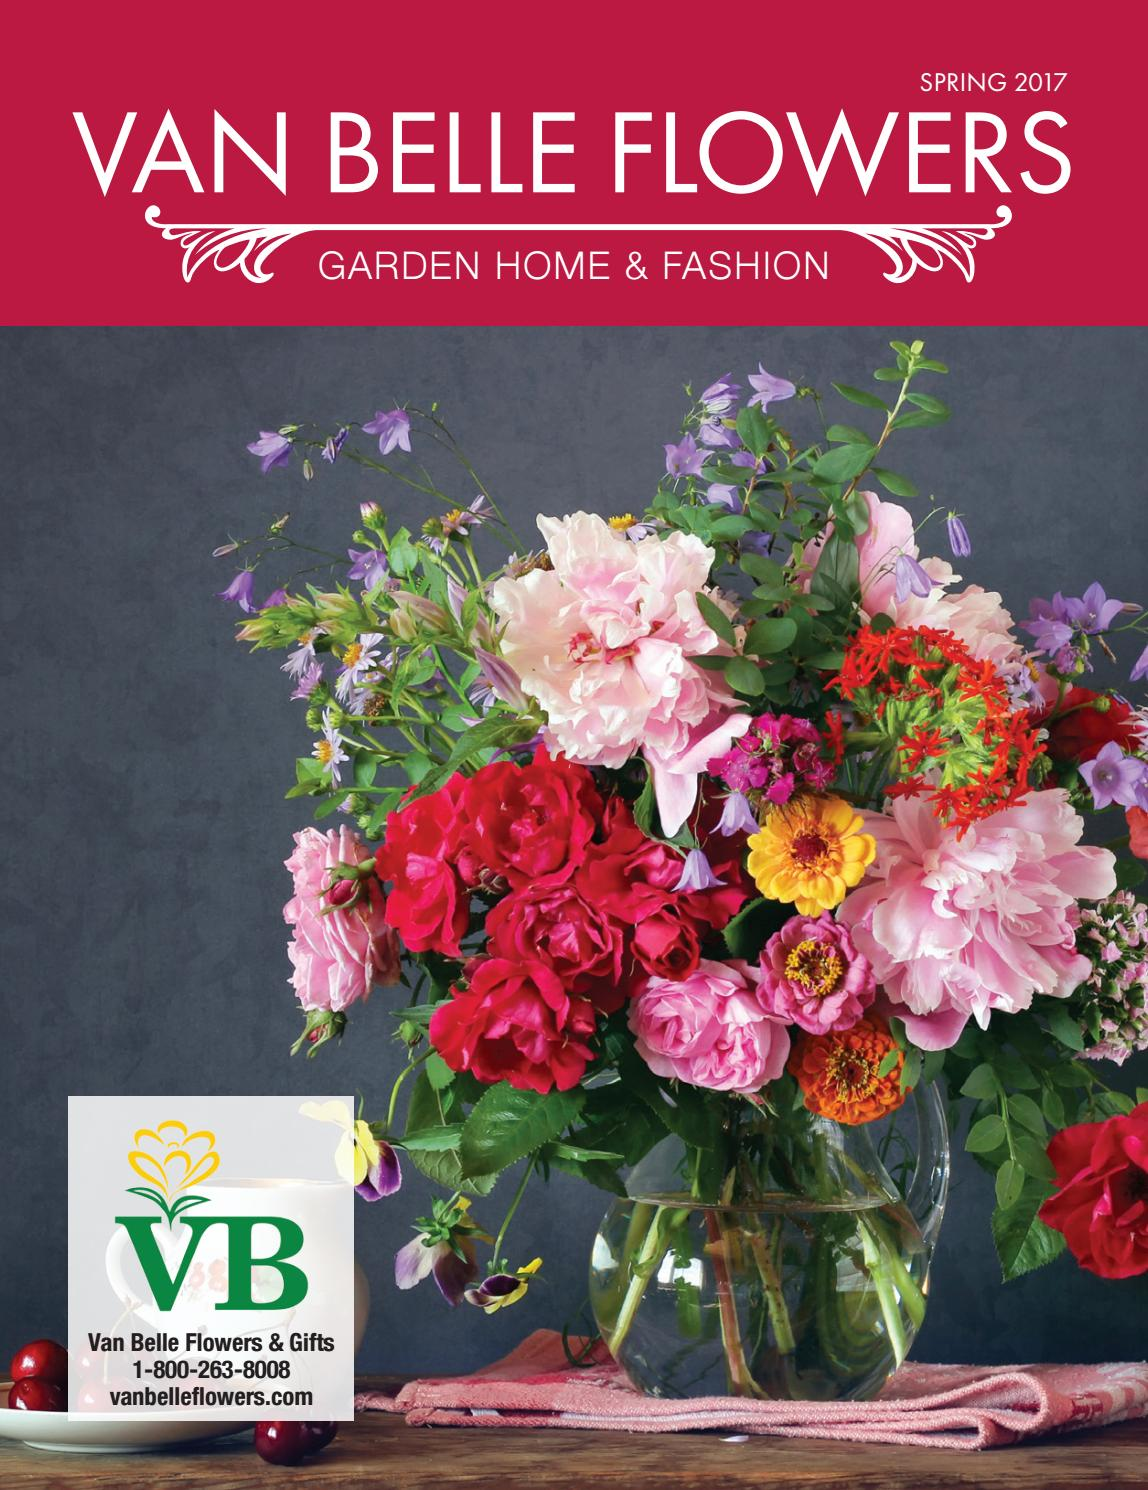 Van belle flowers spring 2017 by country road graphics inc issuu izmirmasajfo